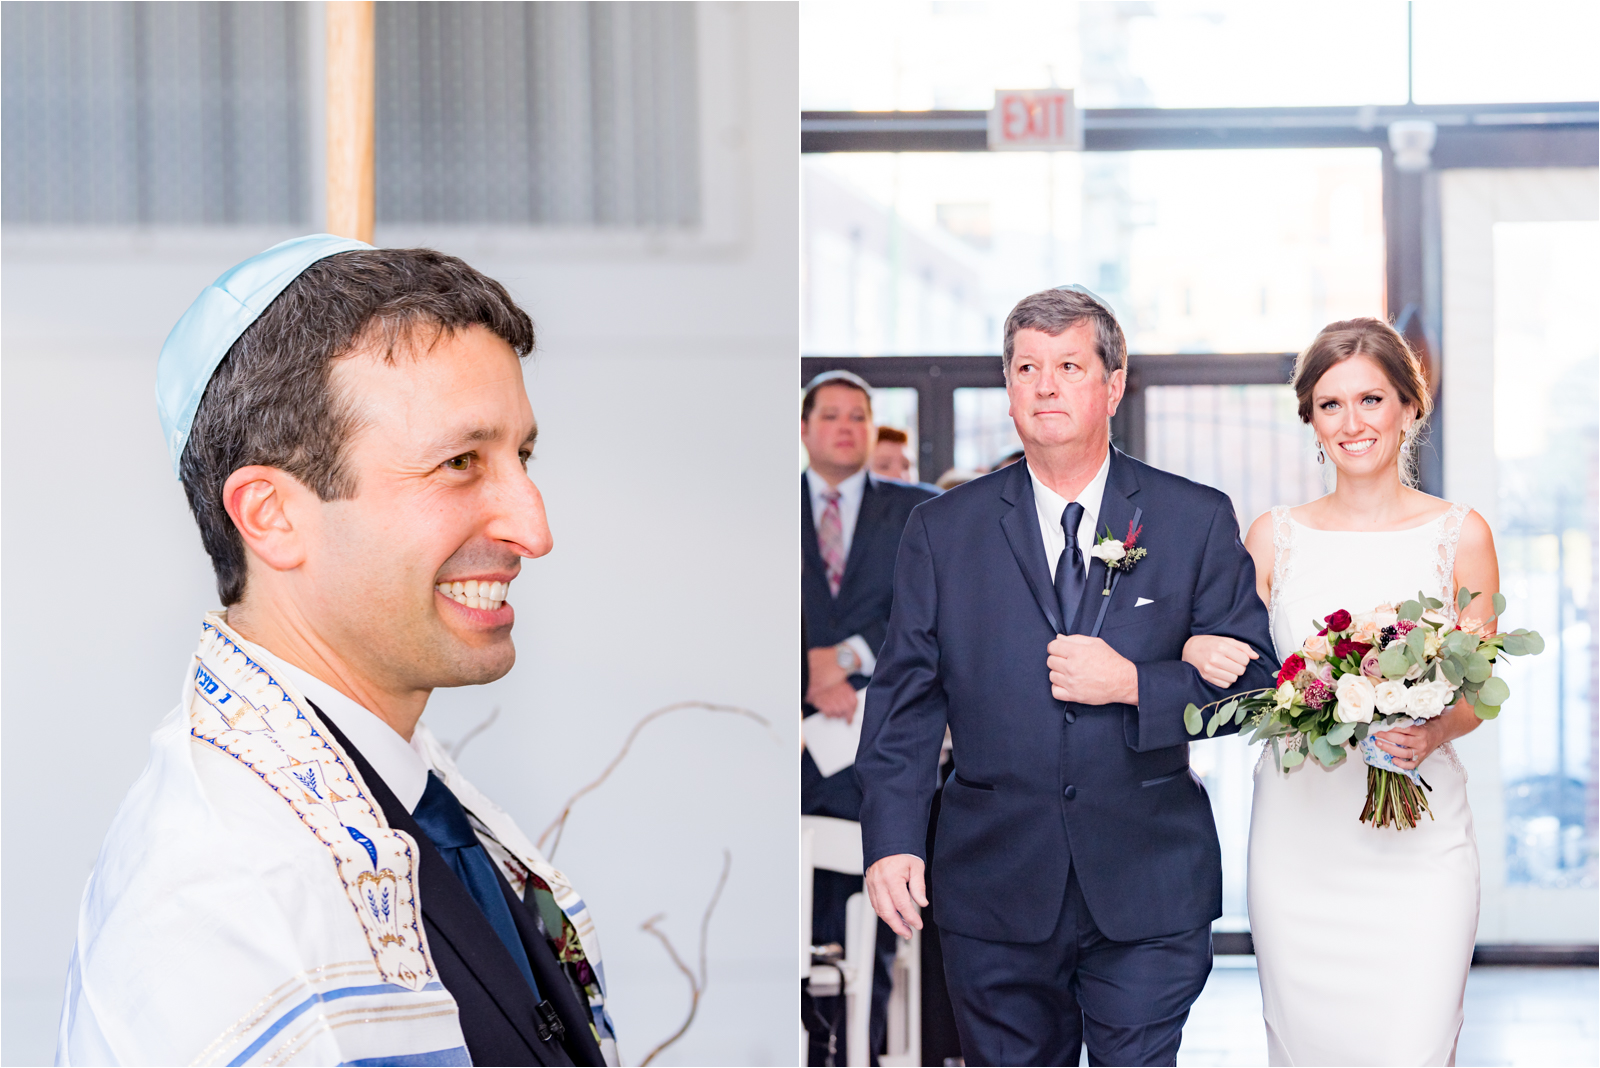 wedding-day-destination wedding photographer-destination-photographer-chicago-illinois-malone-bubman-galleria-marchetti-jessica-capozzola-focus-on-joy-photography-ceremony-groom